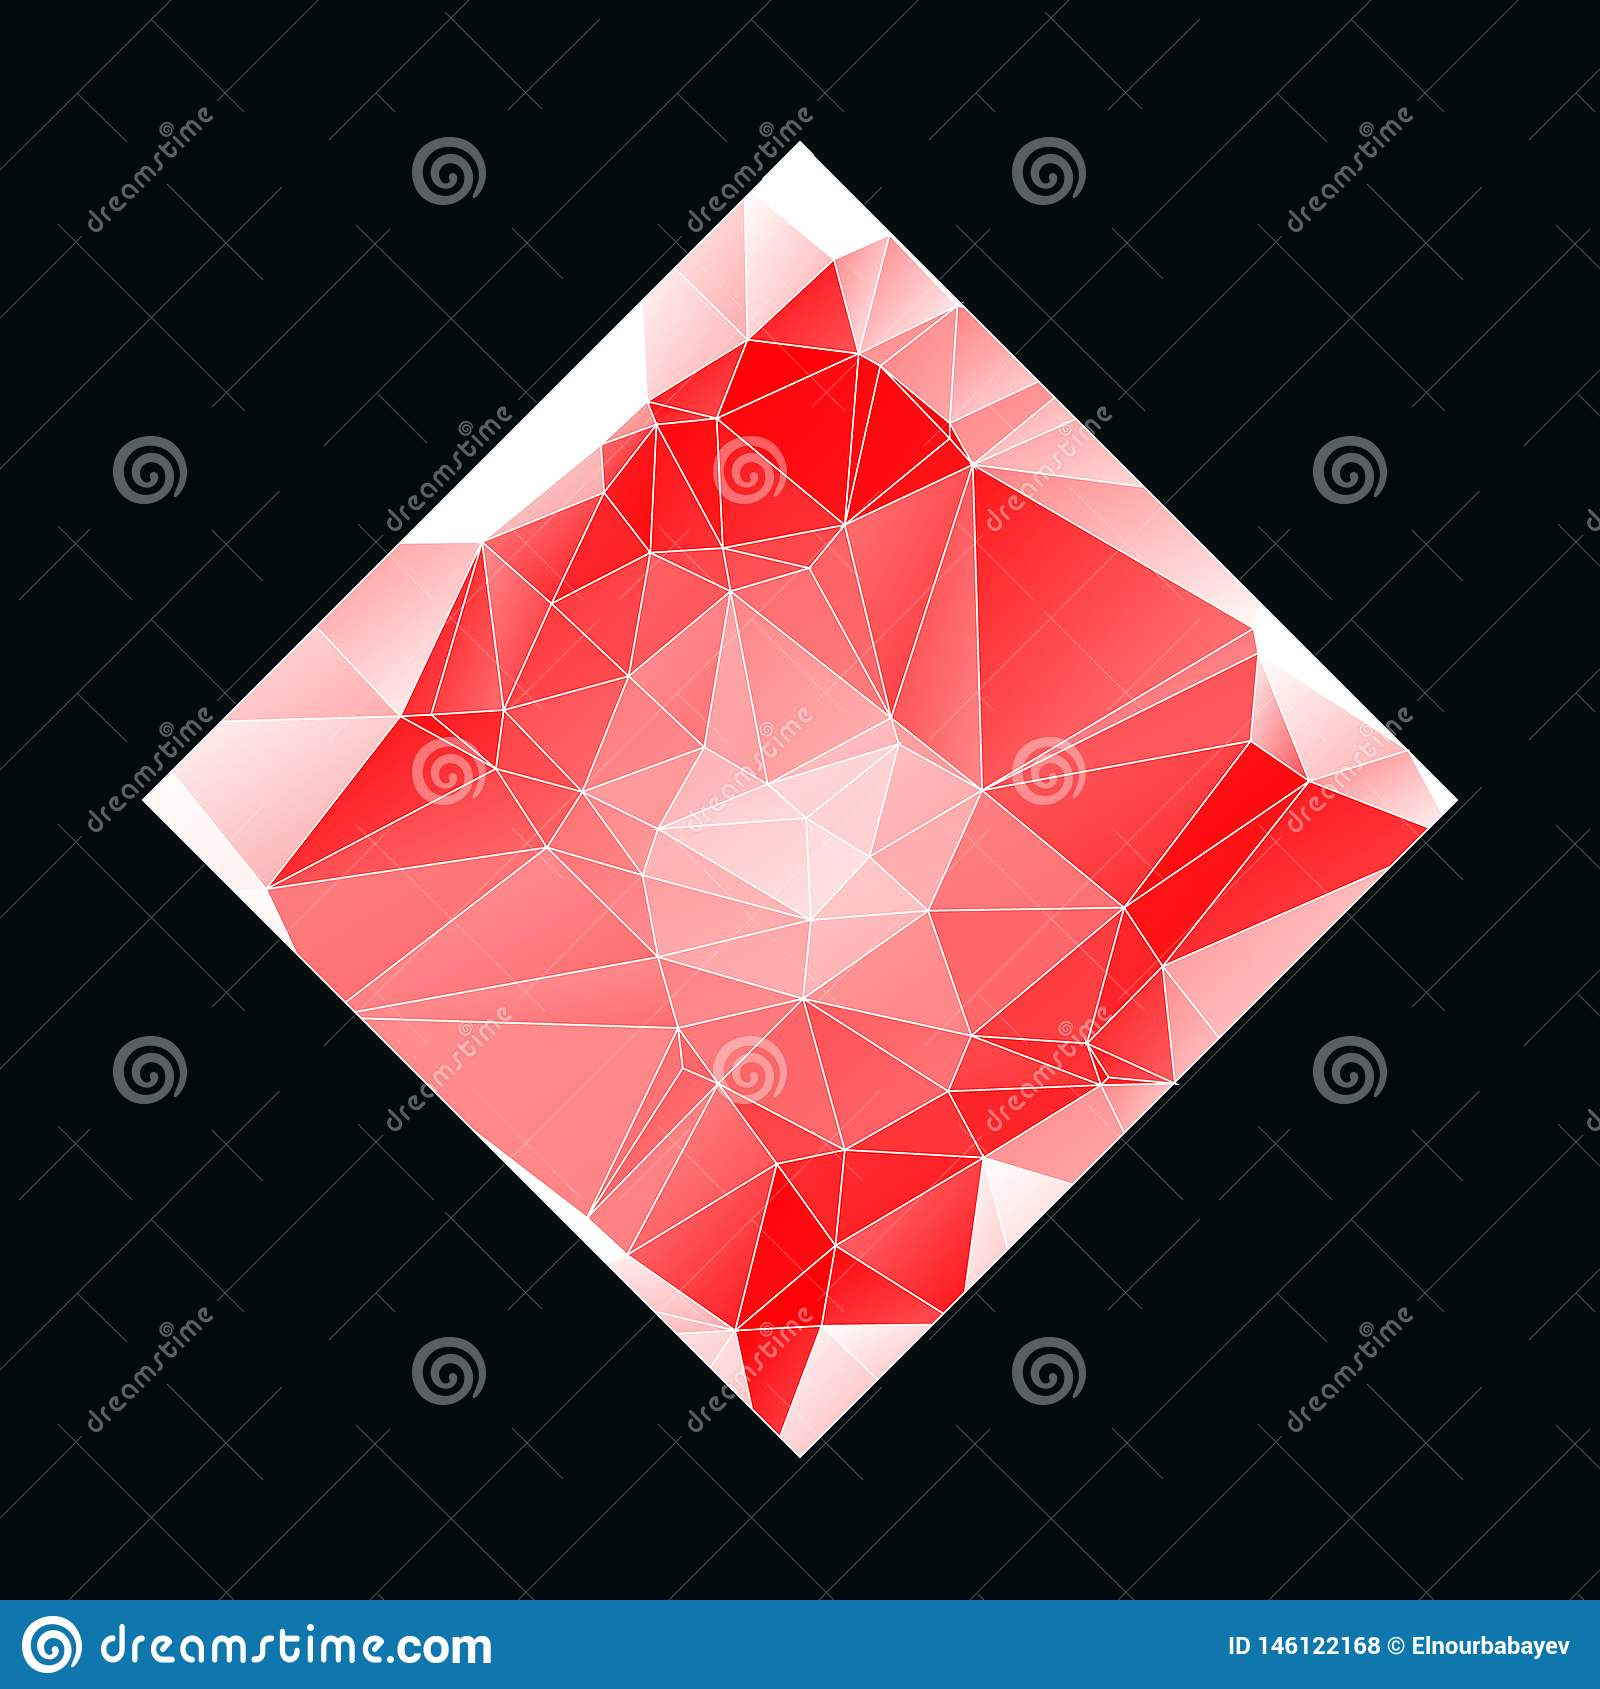 Creative Poligonal Triangle White Red Background with copyspace on it. Low Poly Design. Light Copy Space Color Pattern